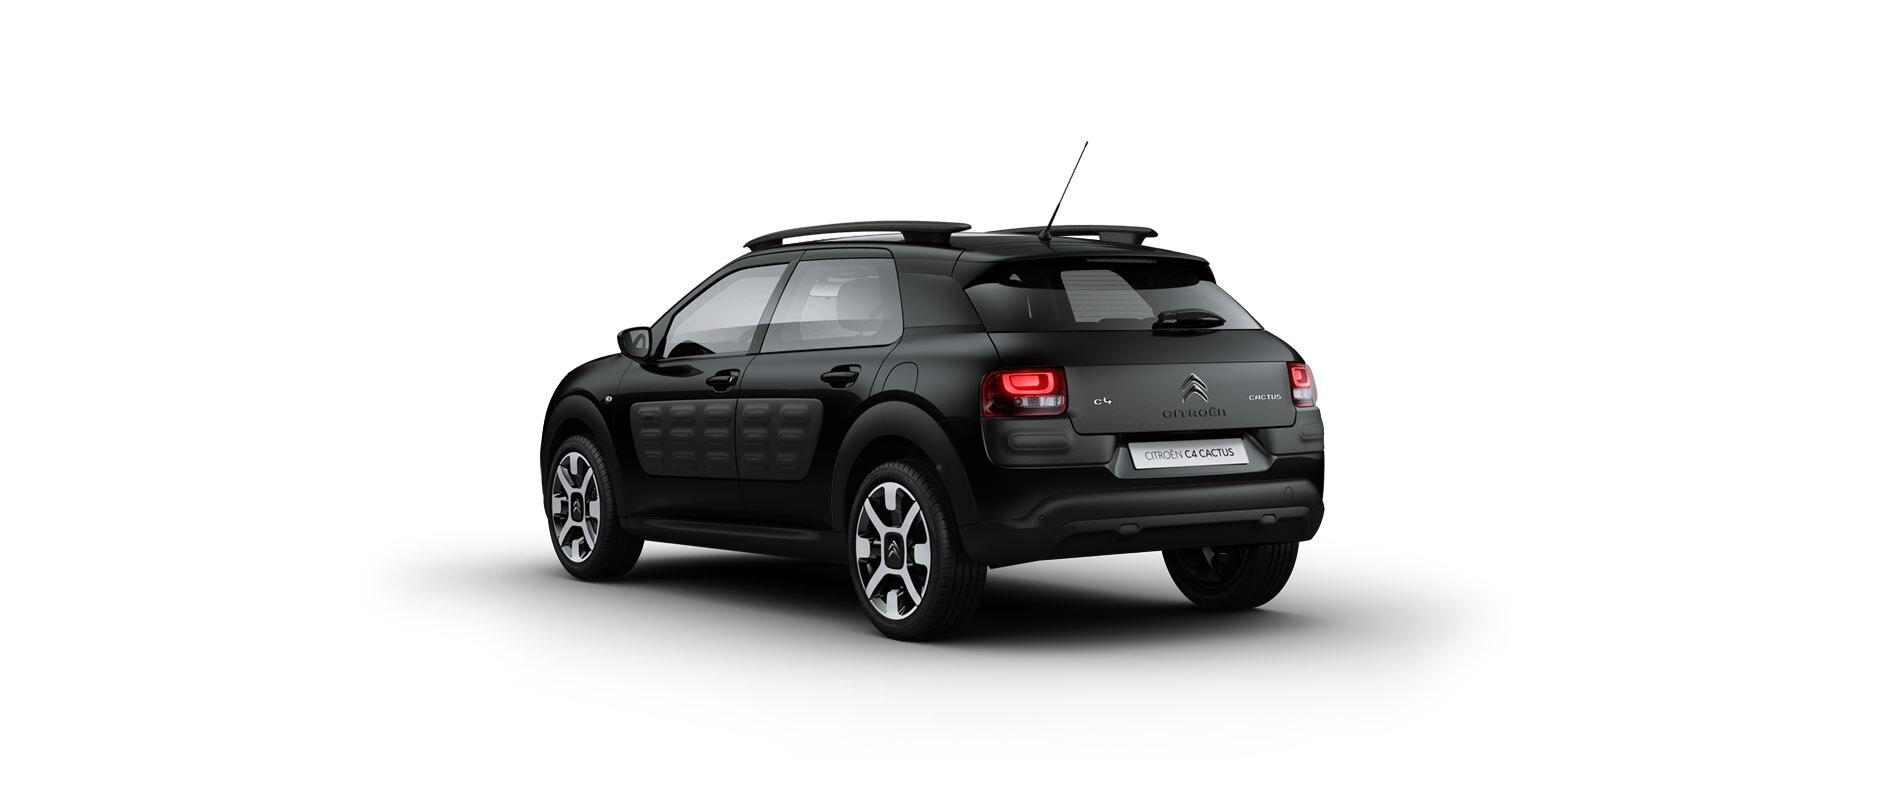 citroen c4 cactus 2017 interior maletero medidas. Black Bedroom Furniture Sets. Home Design Ideas